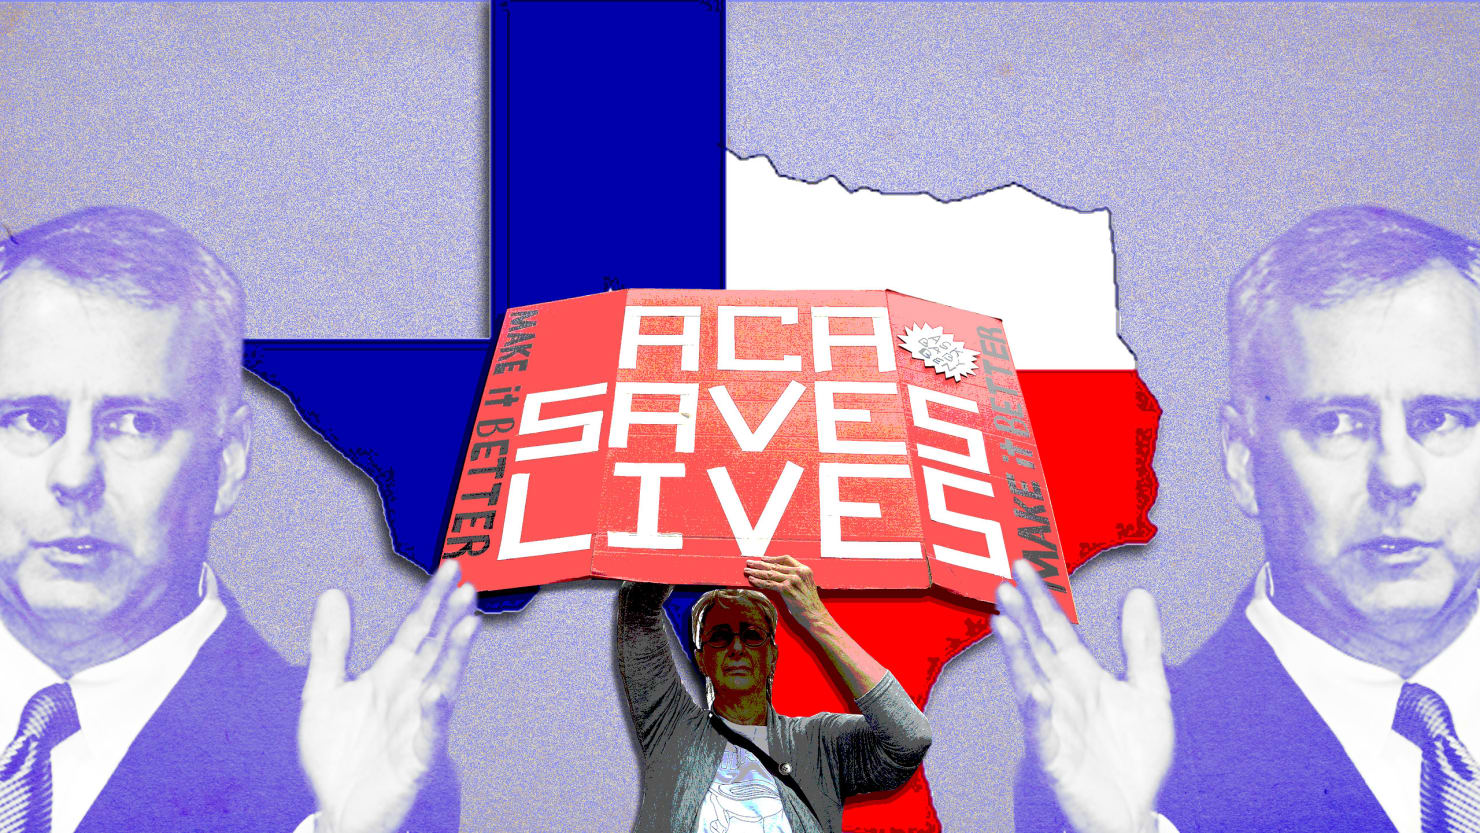 Obamacare Isn't Dead. Three Reasons the Texas Case Will Be Overturned